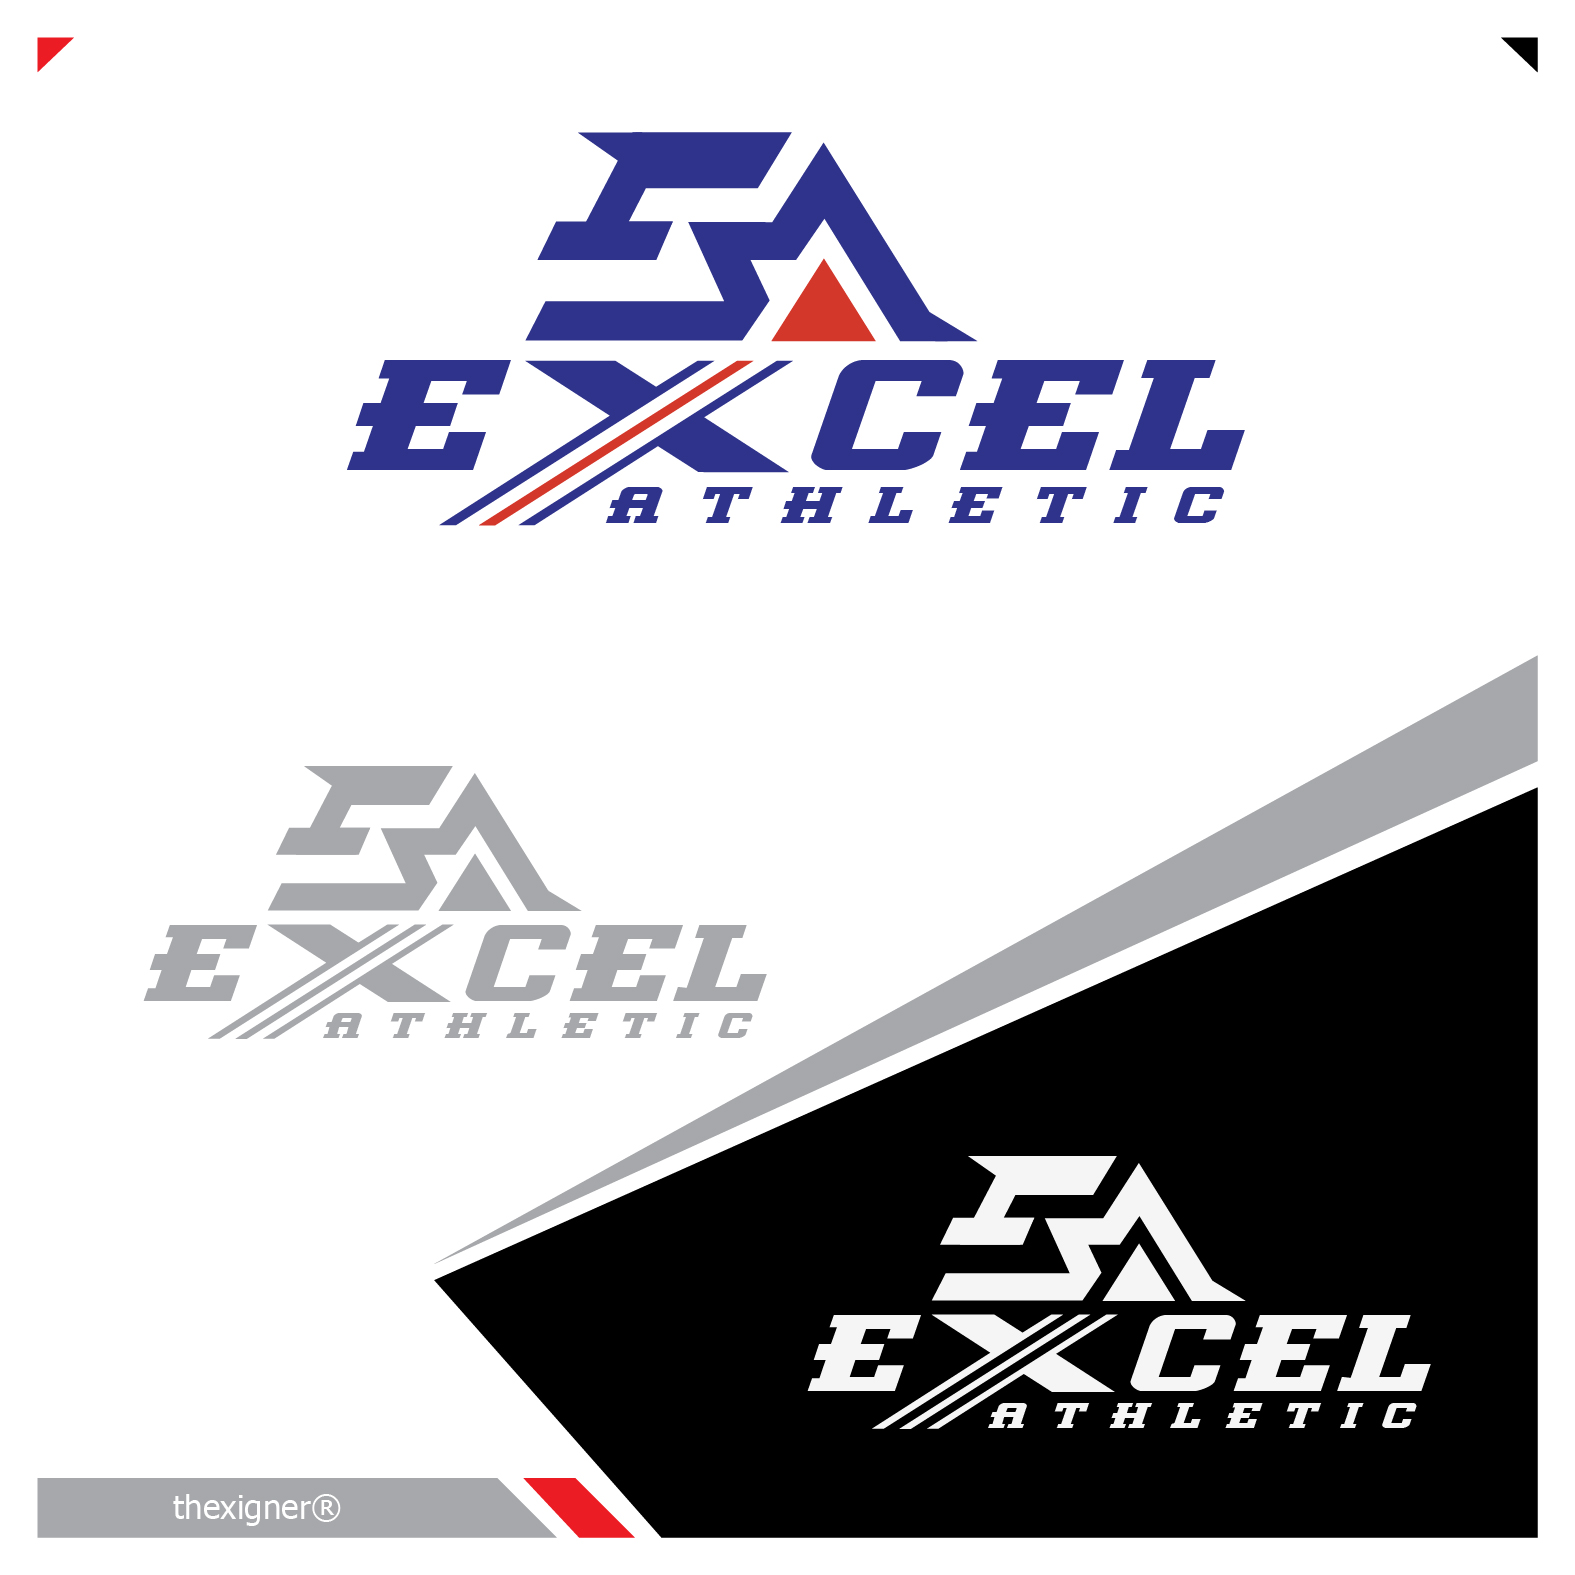 Logo Design by lagalag - Entry No. 48 in the Logo Design Contest Artistic Logo Design for Excel Athletic Conditioning 4 kids.